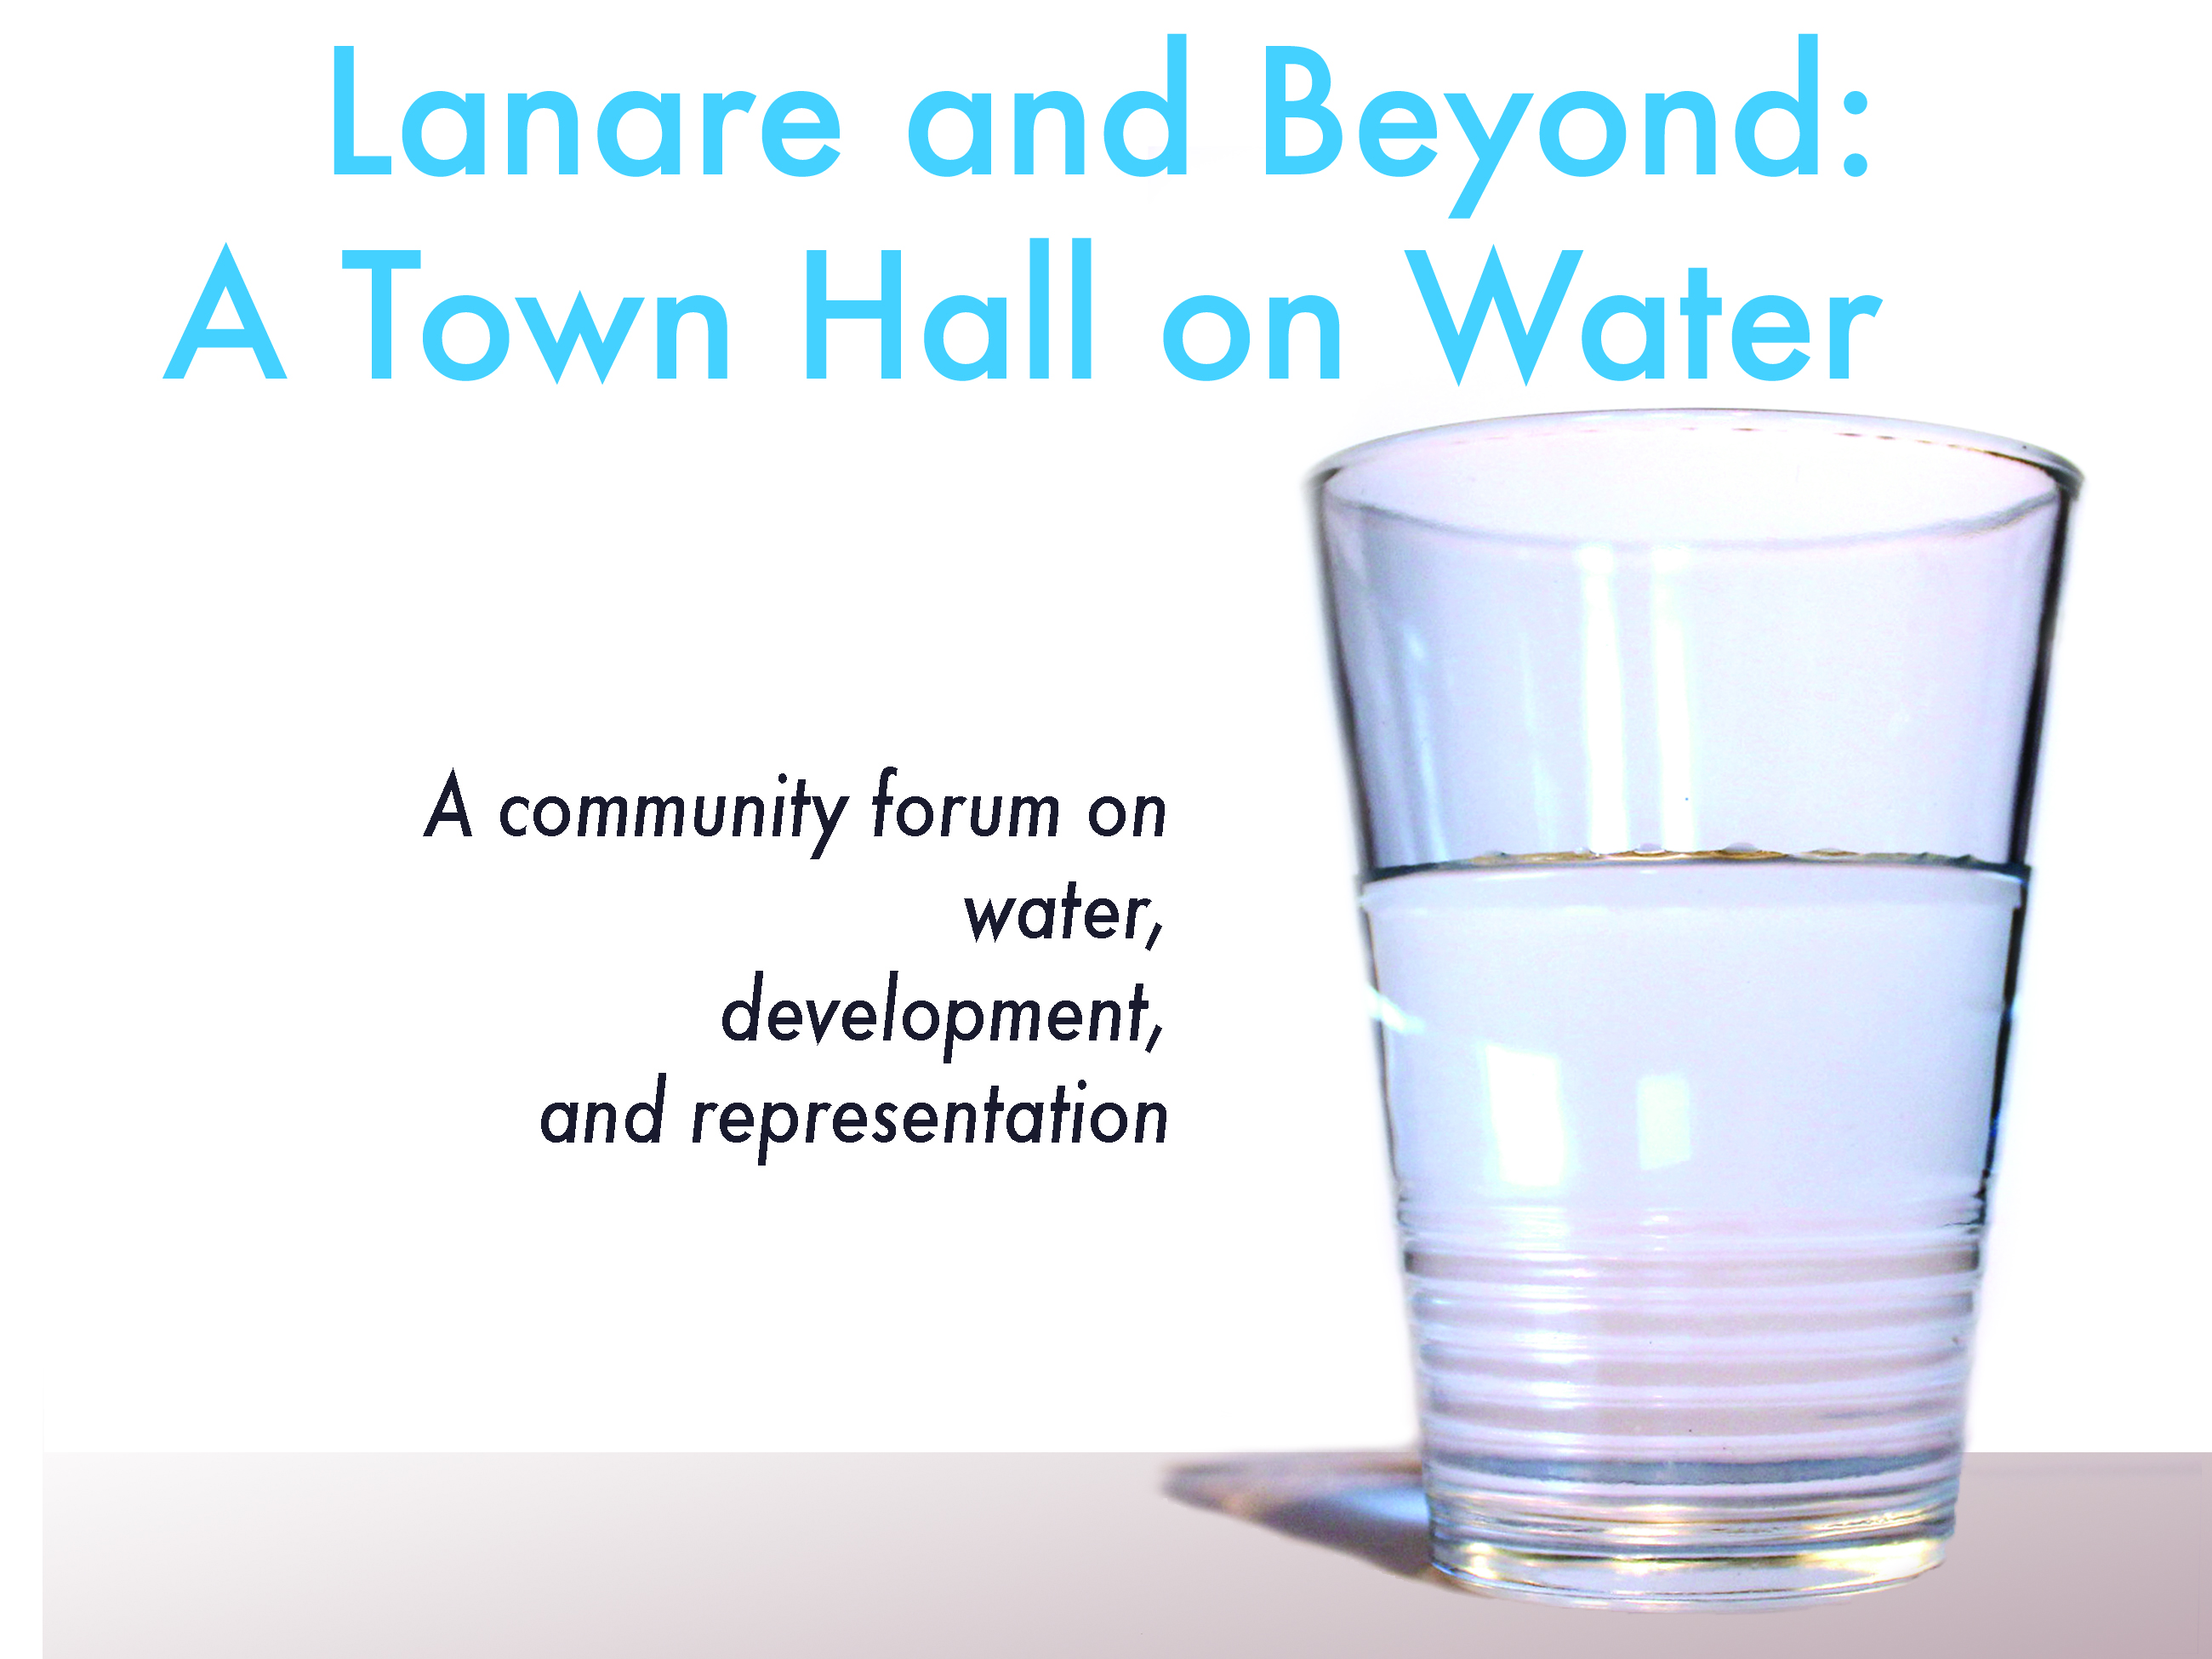 Lanare and Beyond: a Town Hall on Water